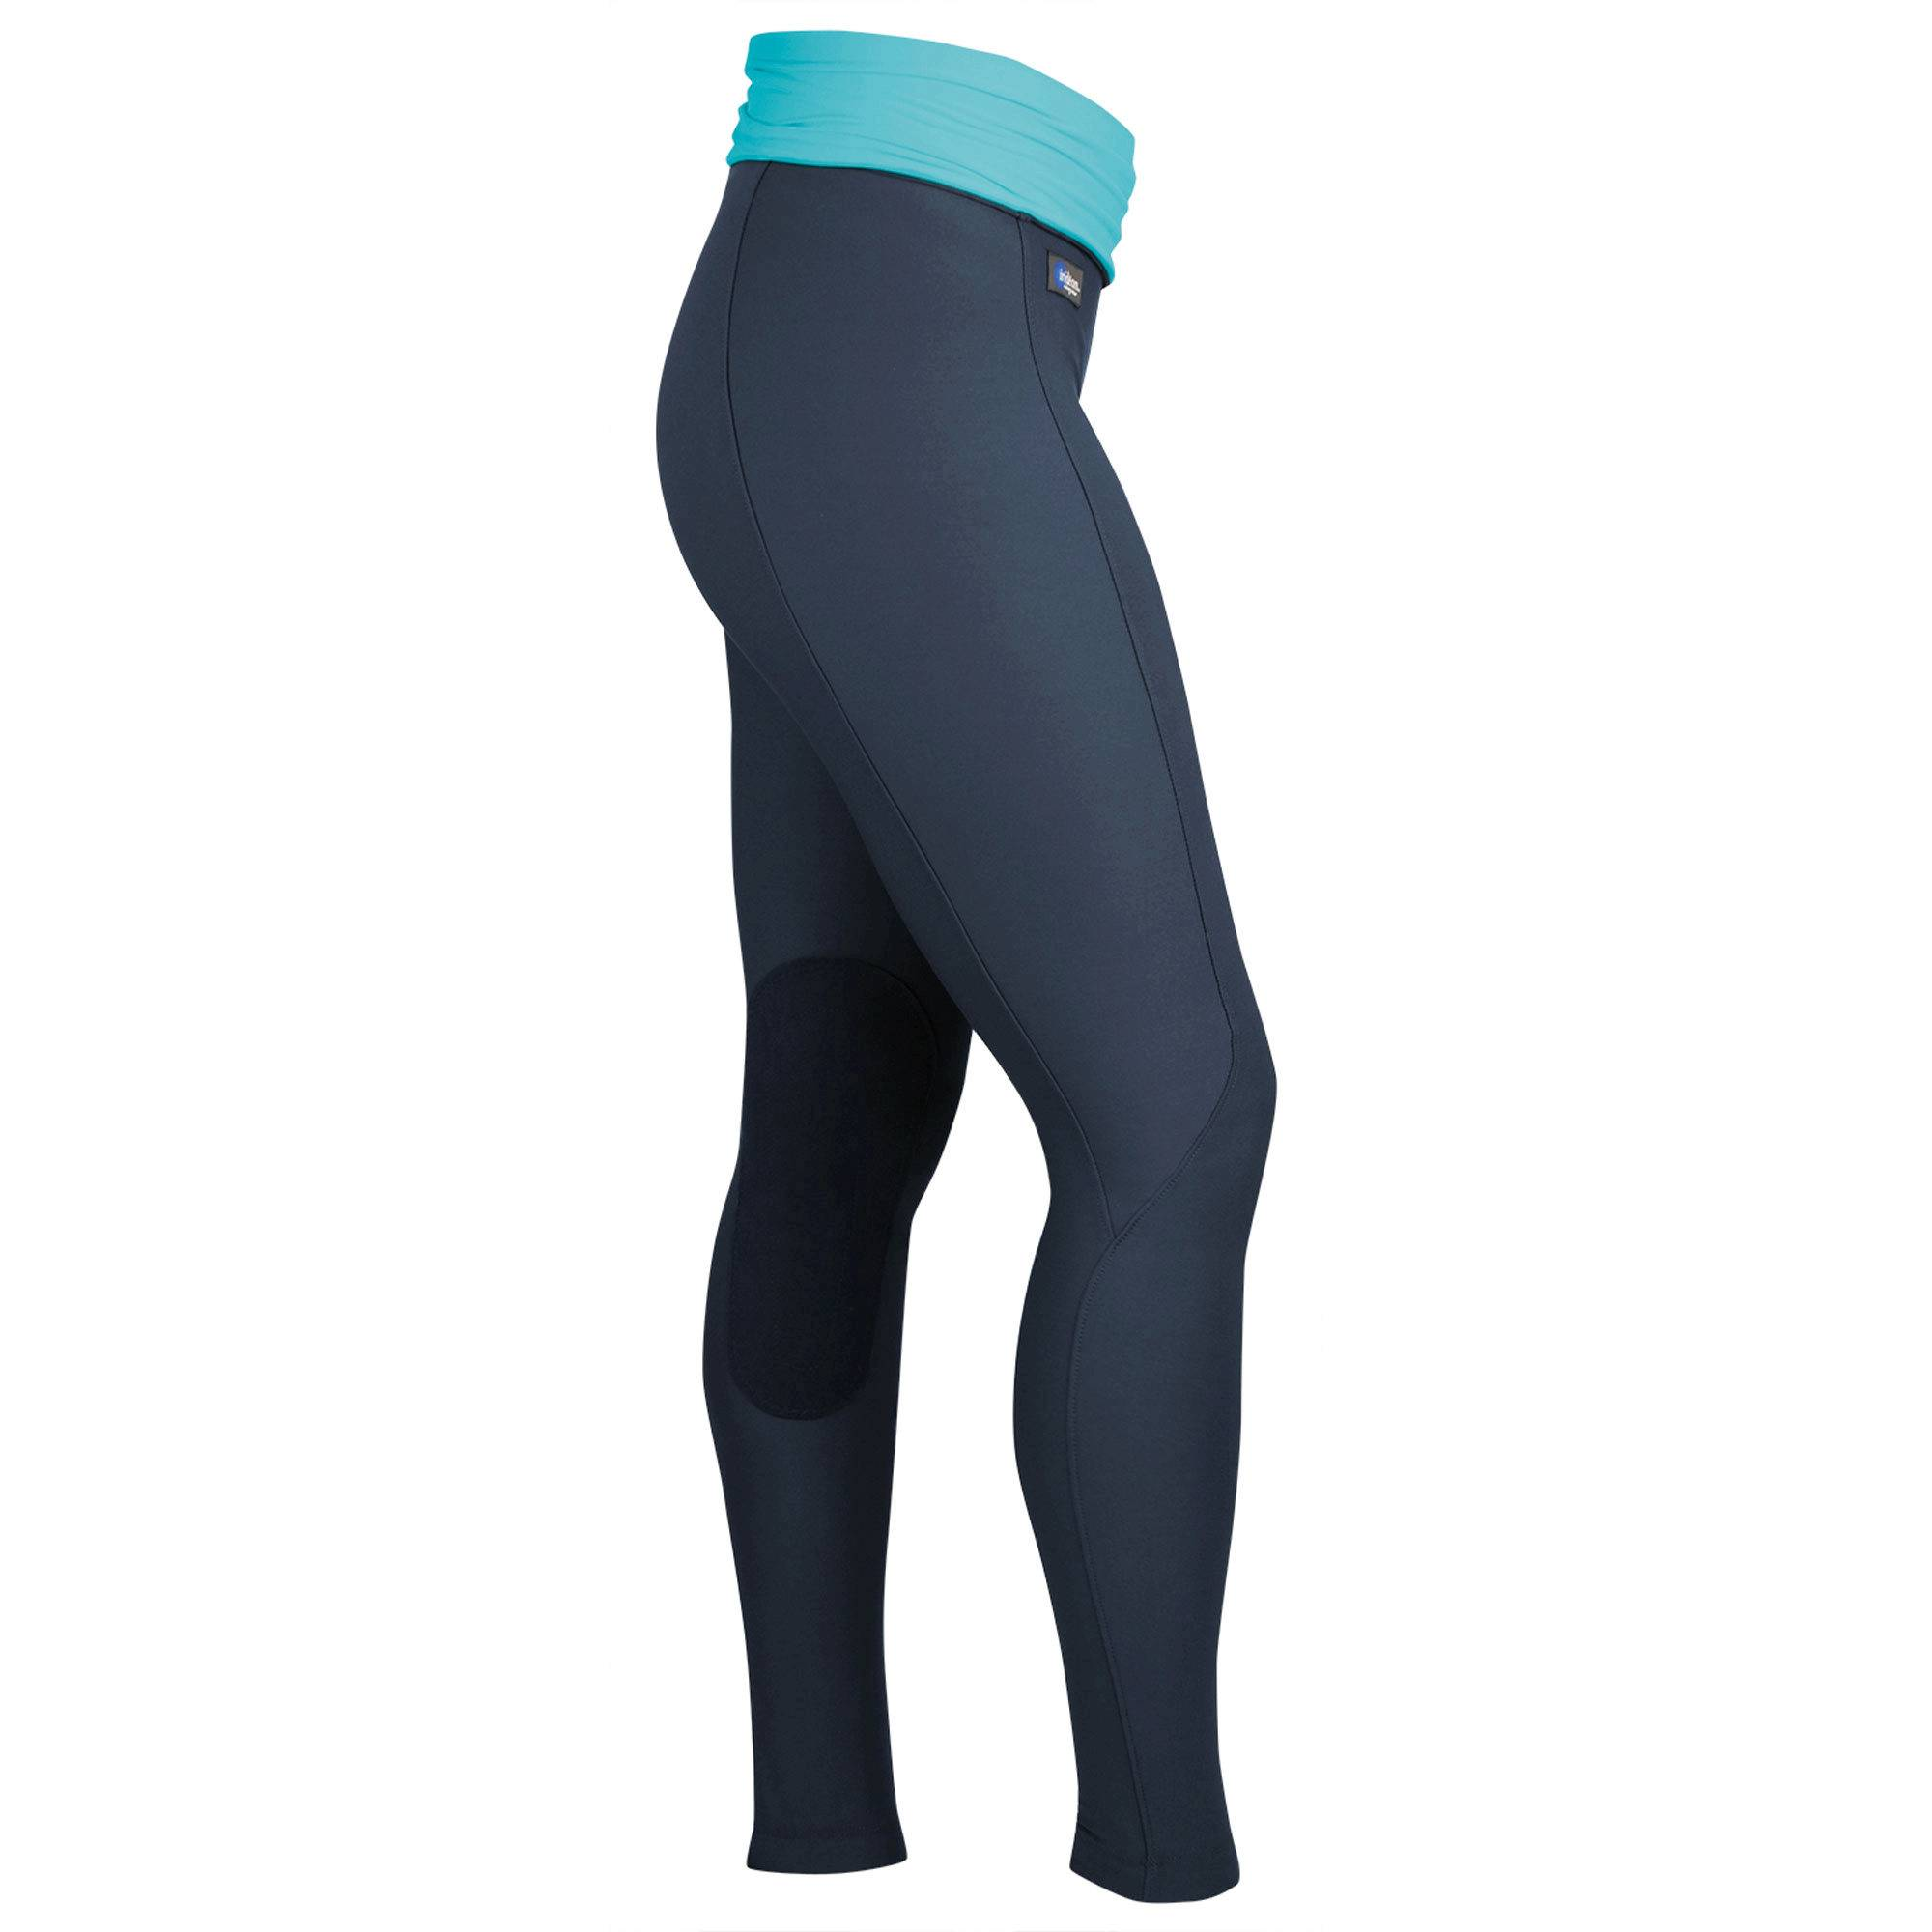 Irideon Issential Topline Tights - Ladies